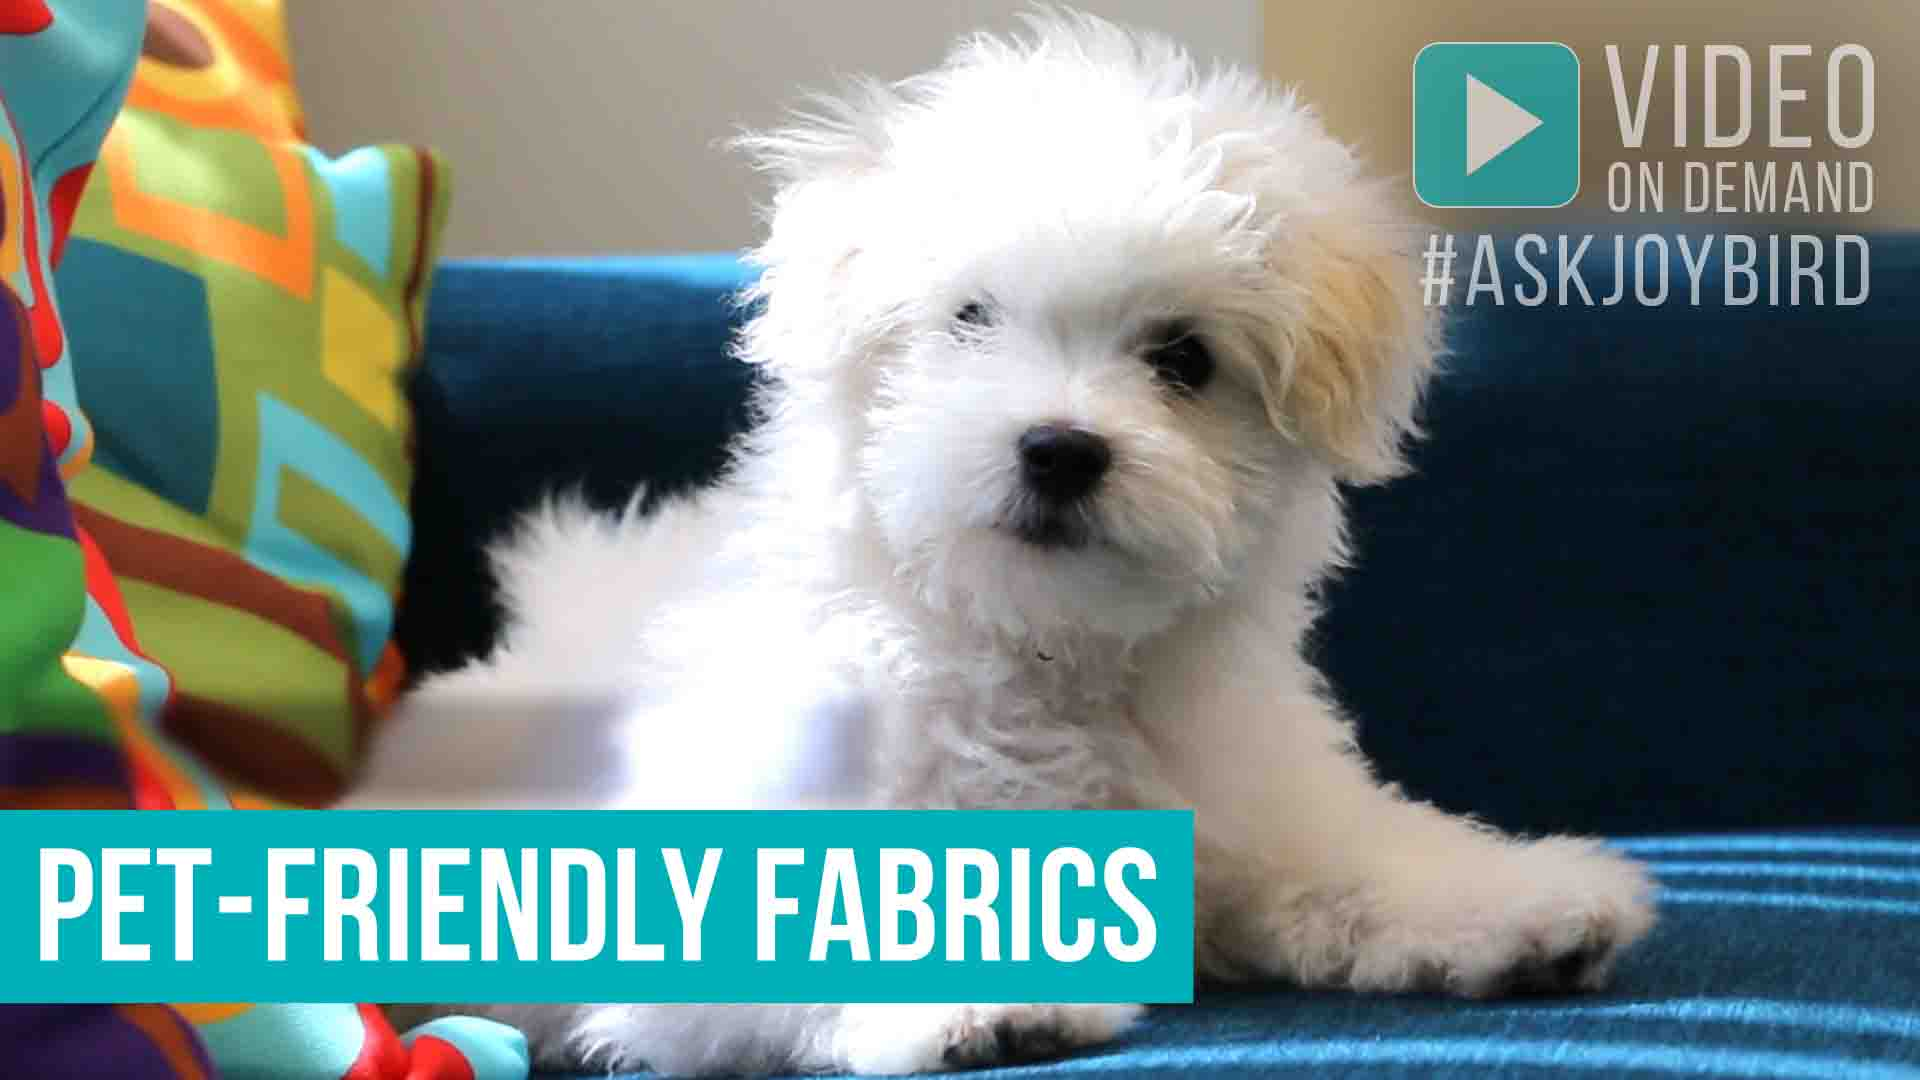 Pet Friendly Fabrics | Joybird